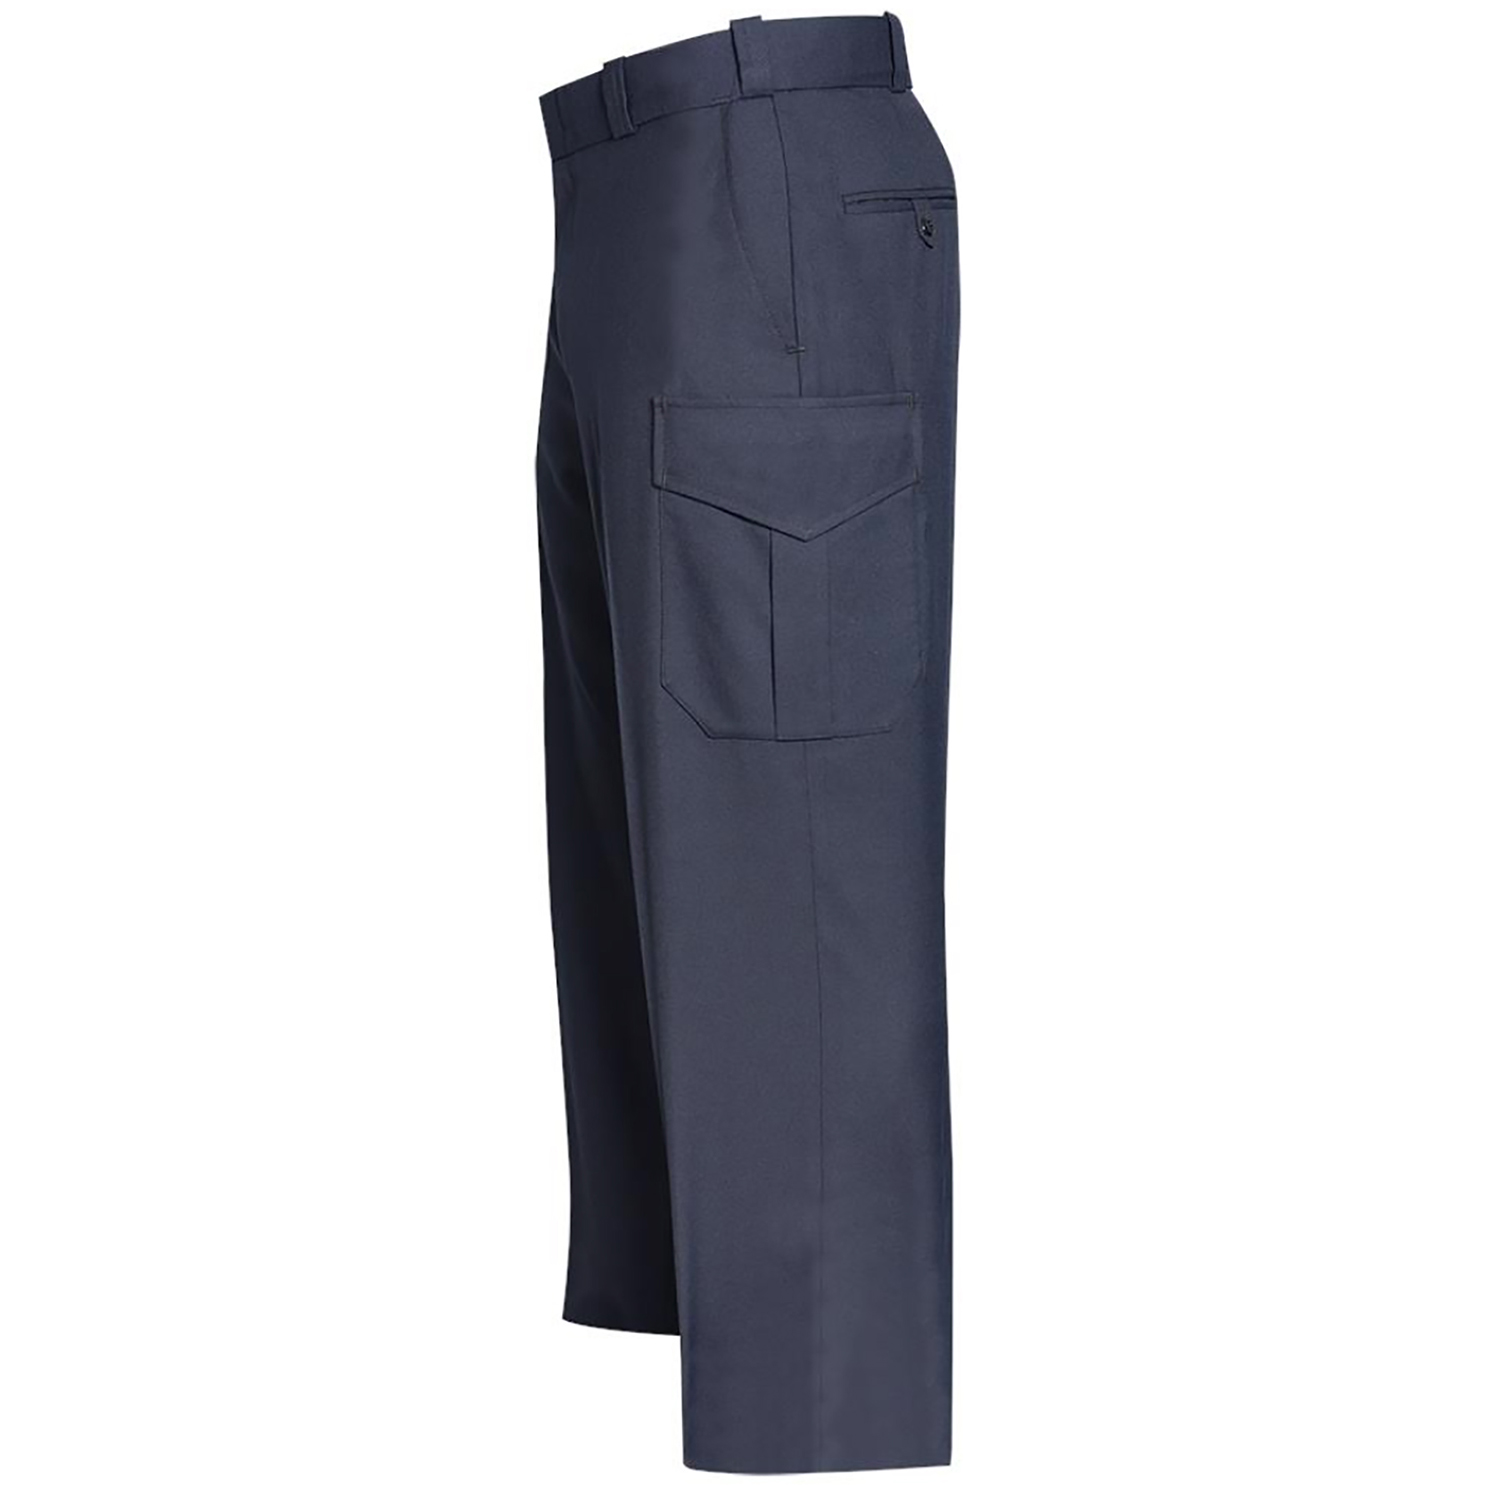 Flying Cross Mens Polyester and Wool Justice Cargo Pants